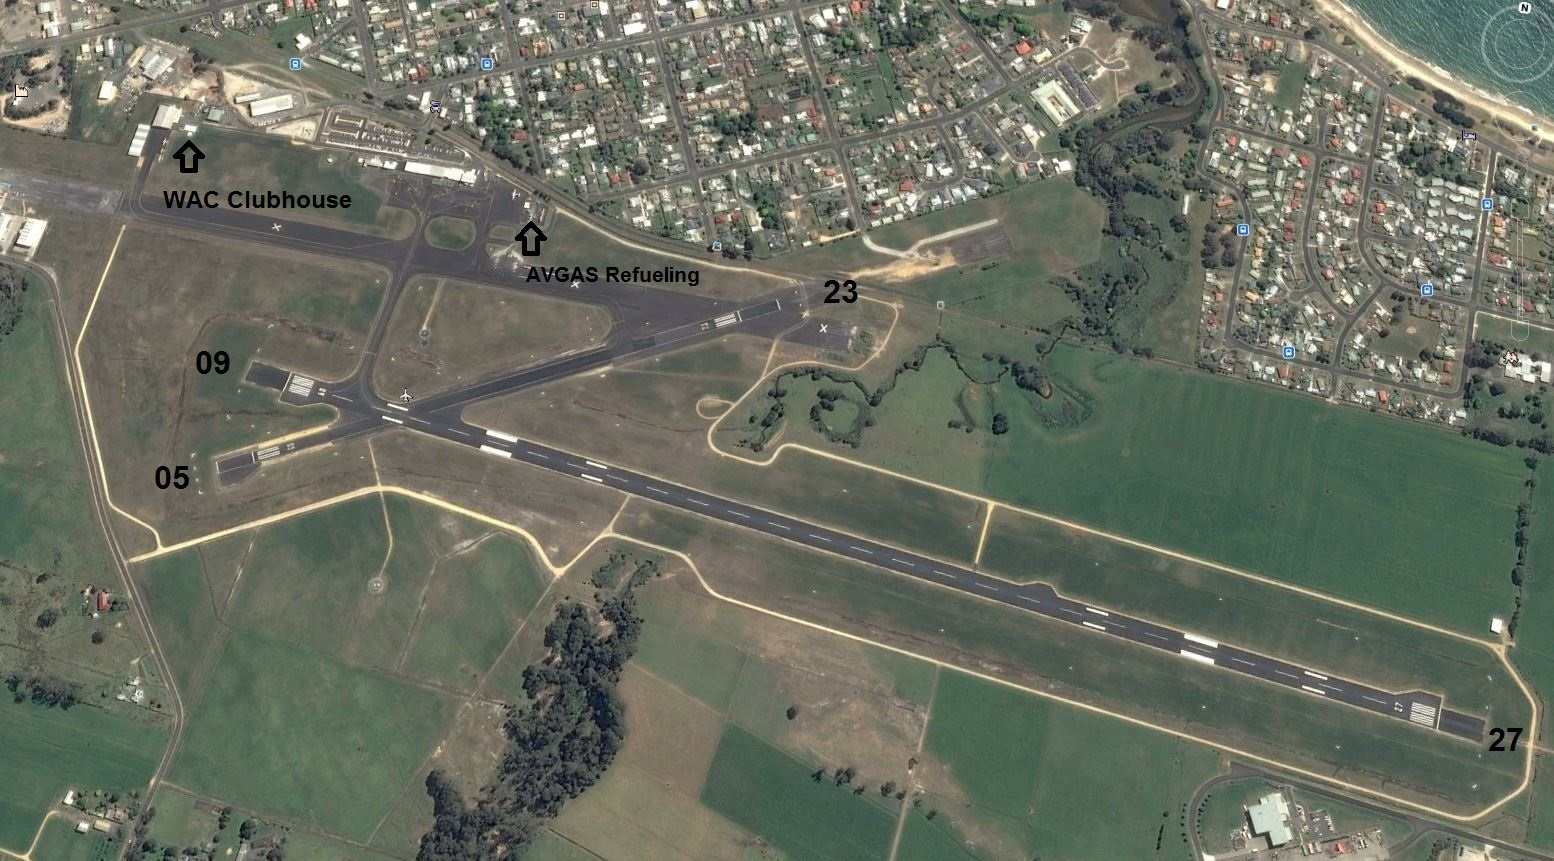 Google Earth Airport Layout